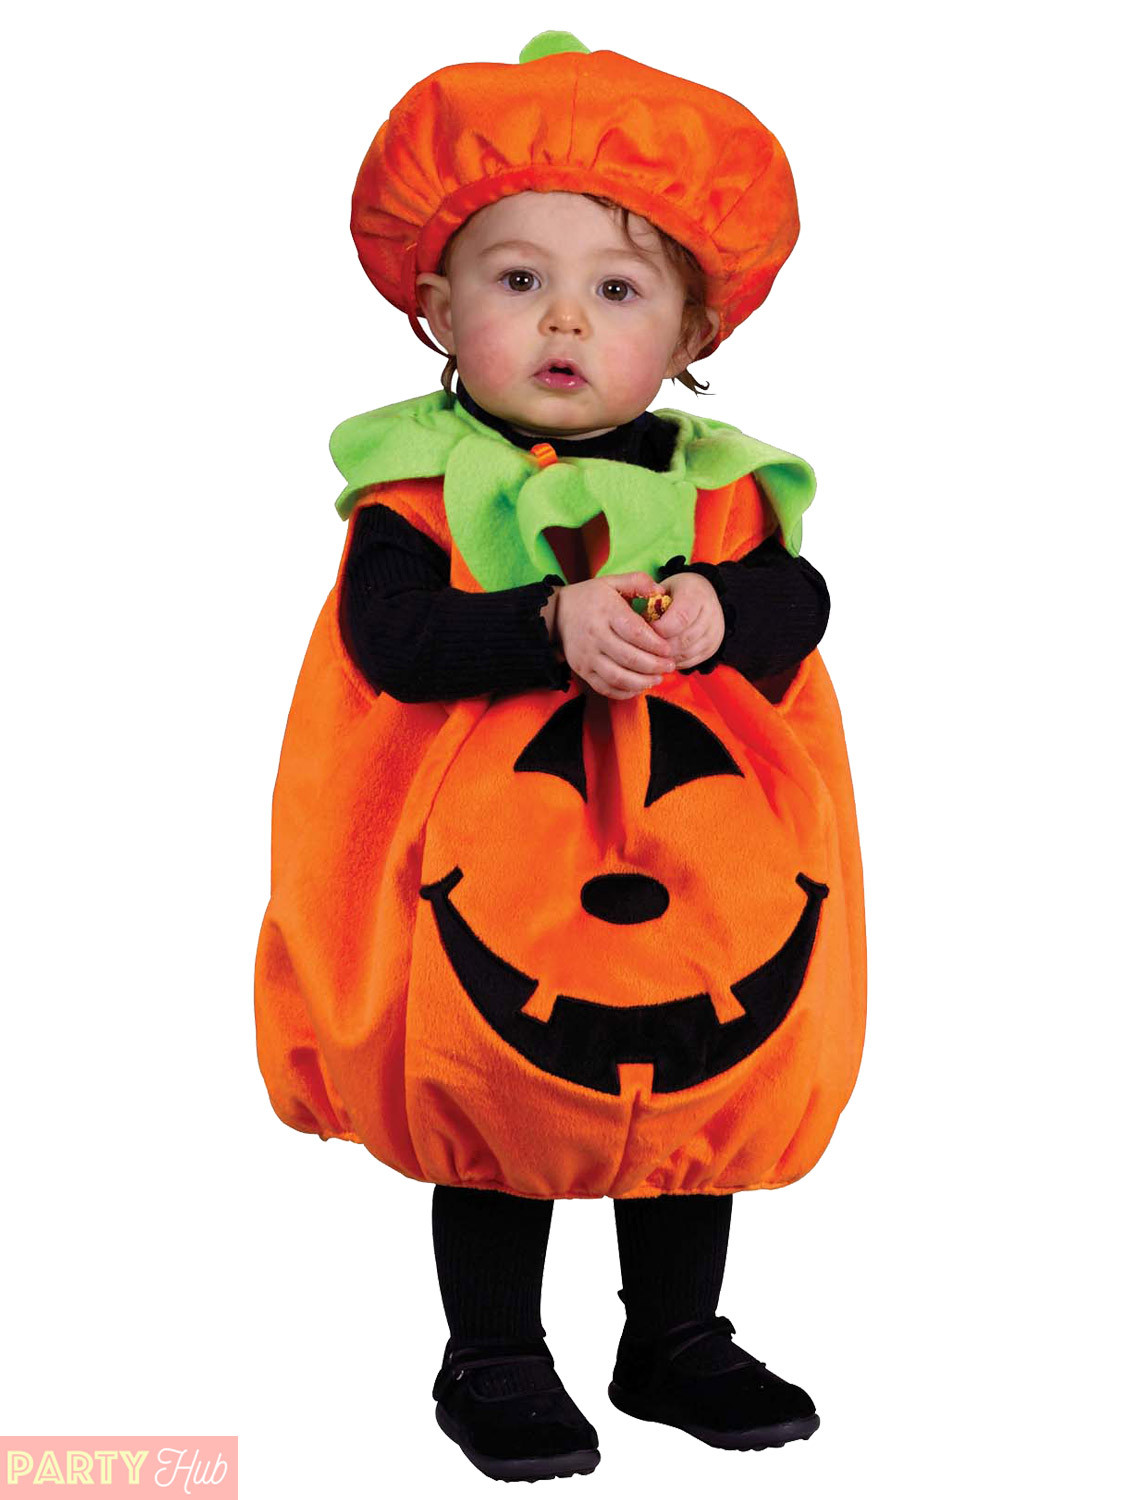 Toddler DIY Costumes  Baby Toddler Halloween Costume Childrens Kids Ghost